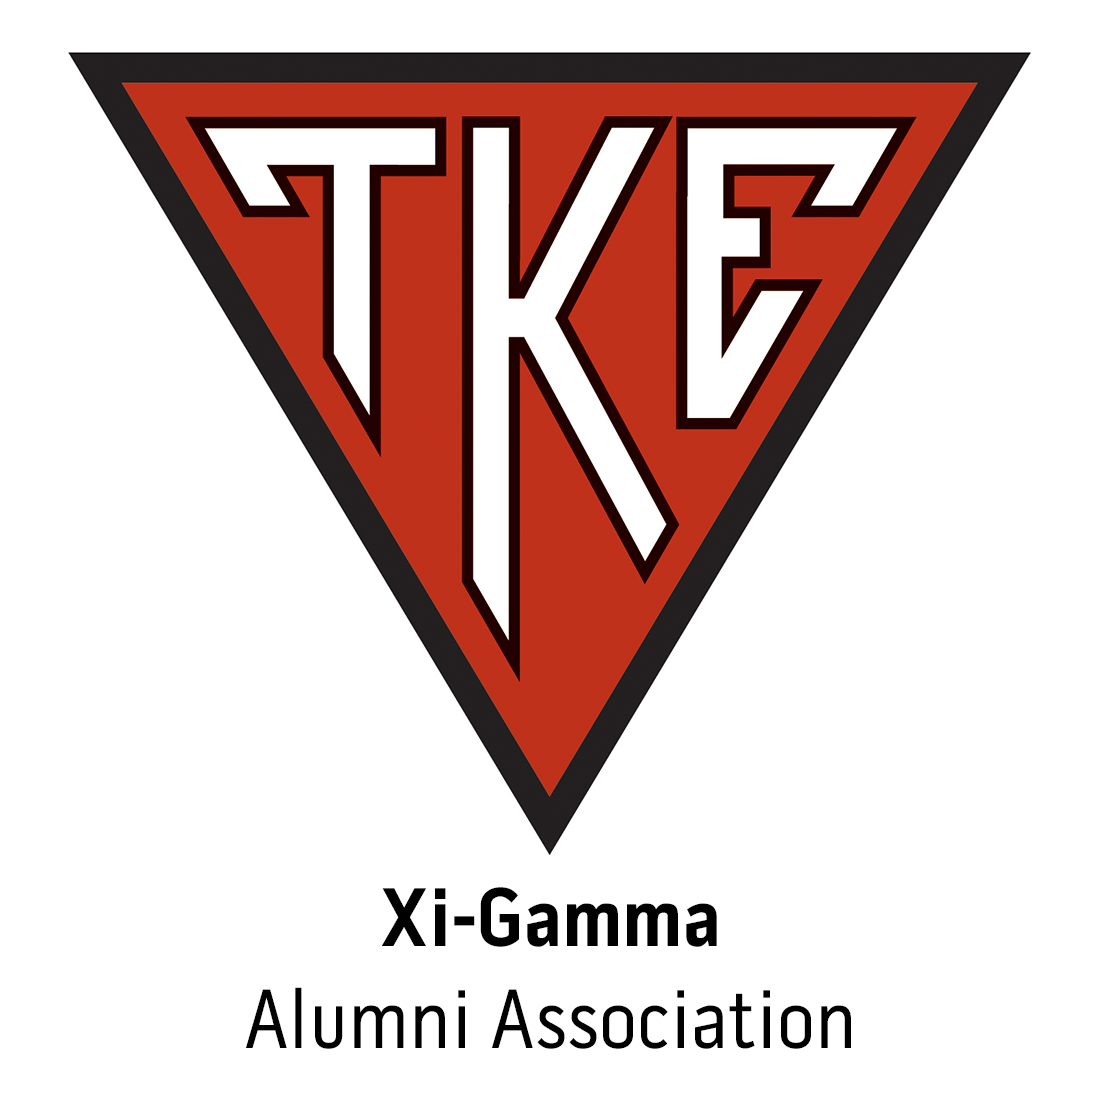 Xi-Gamma Alumni Association for New York Institute of New York-Old Westbury